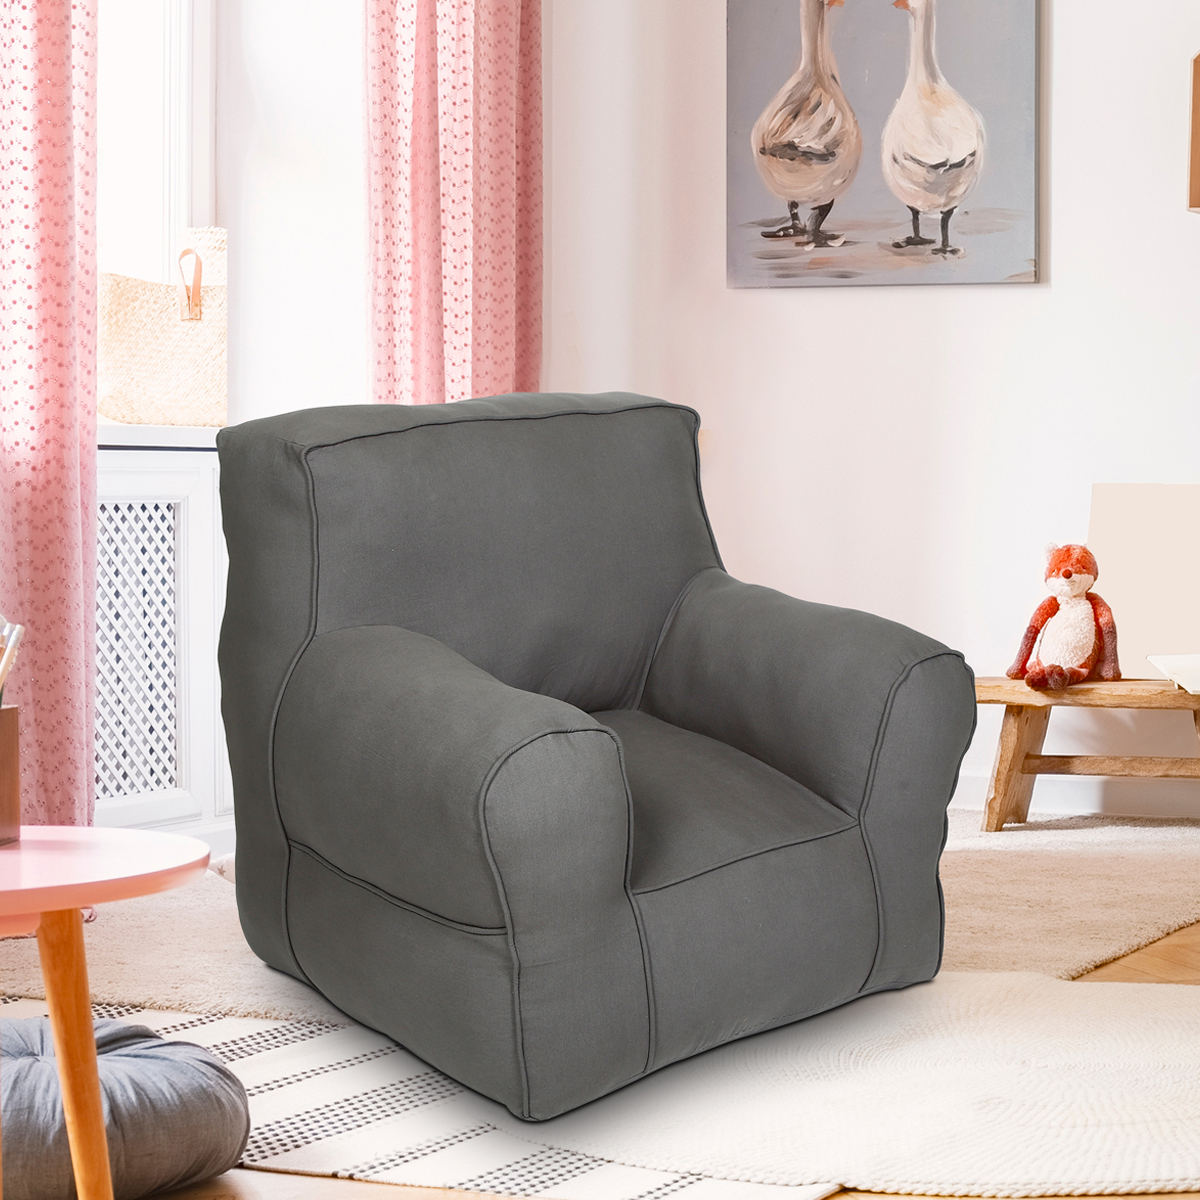 Grey  Organic Cotton adult  Sofa